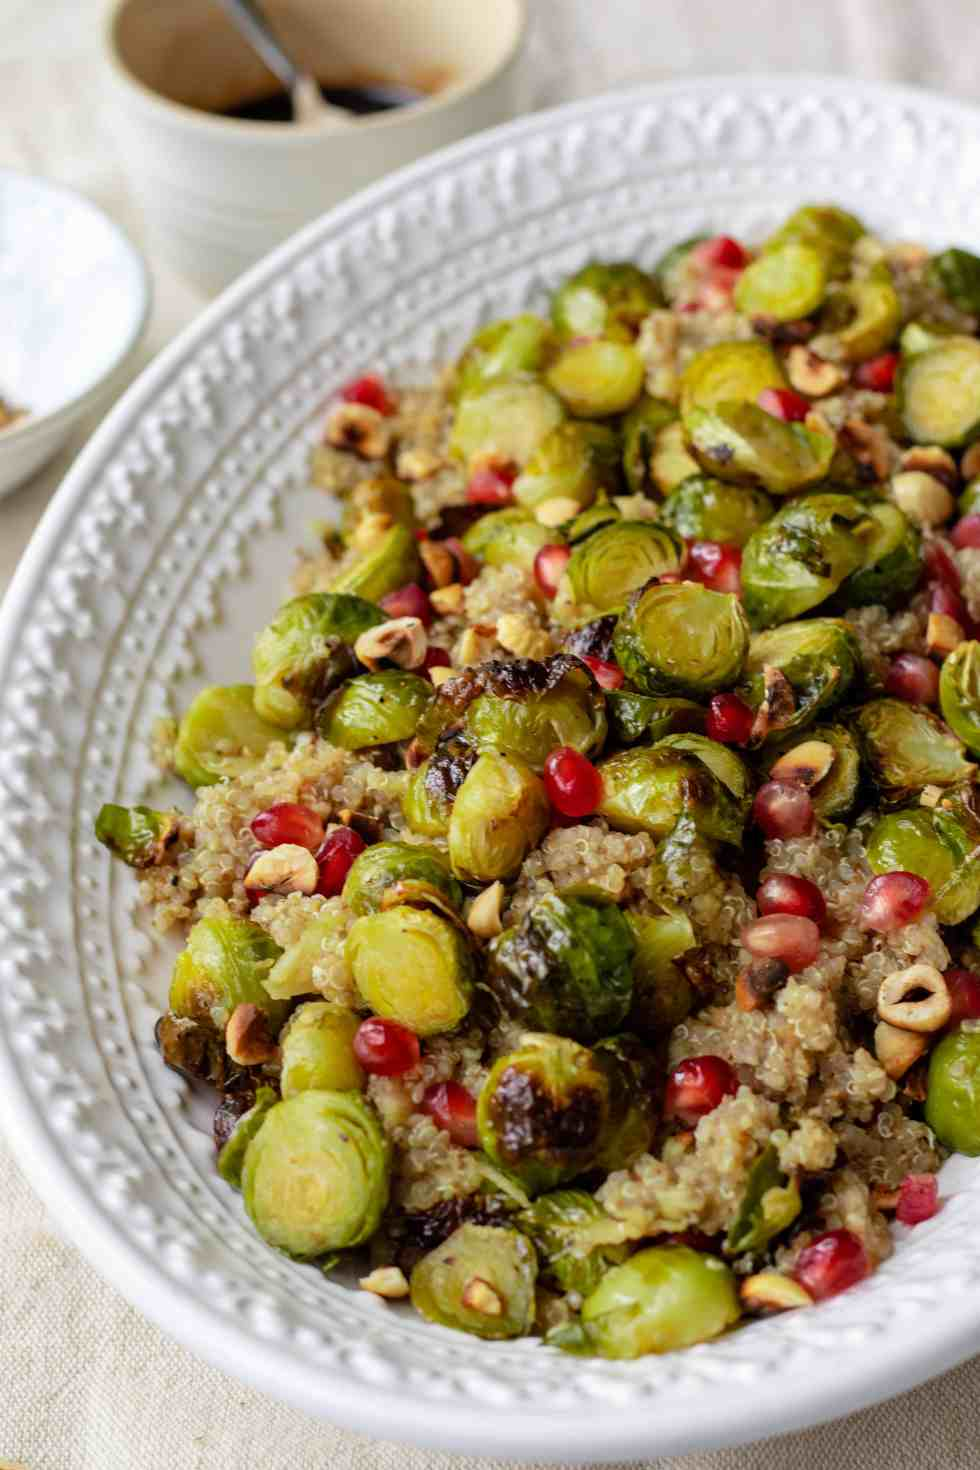 Maple Roasted Sprout Salad with Quinoa, Hazelnuts, Apple, Pomegranate & Balsamic Reduction - Vegan, GF & Healthy! Georgie Eats